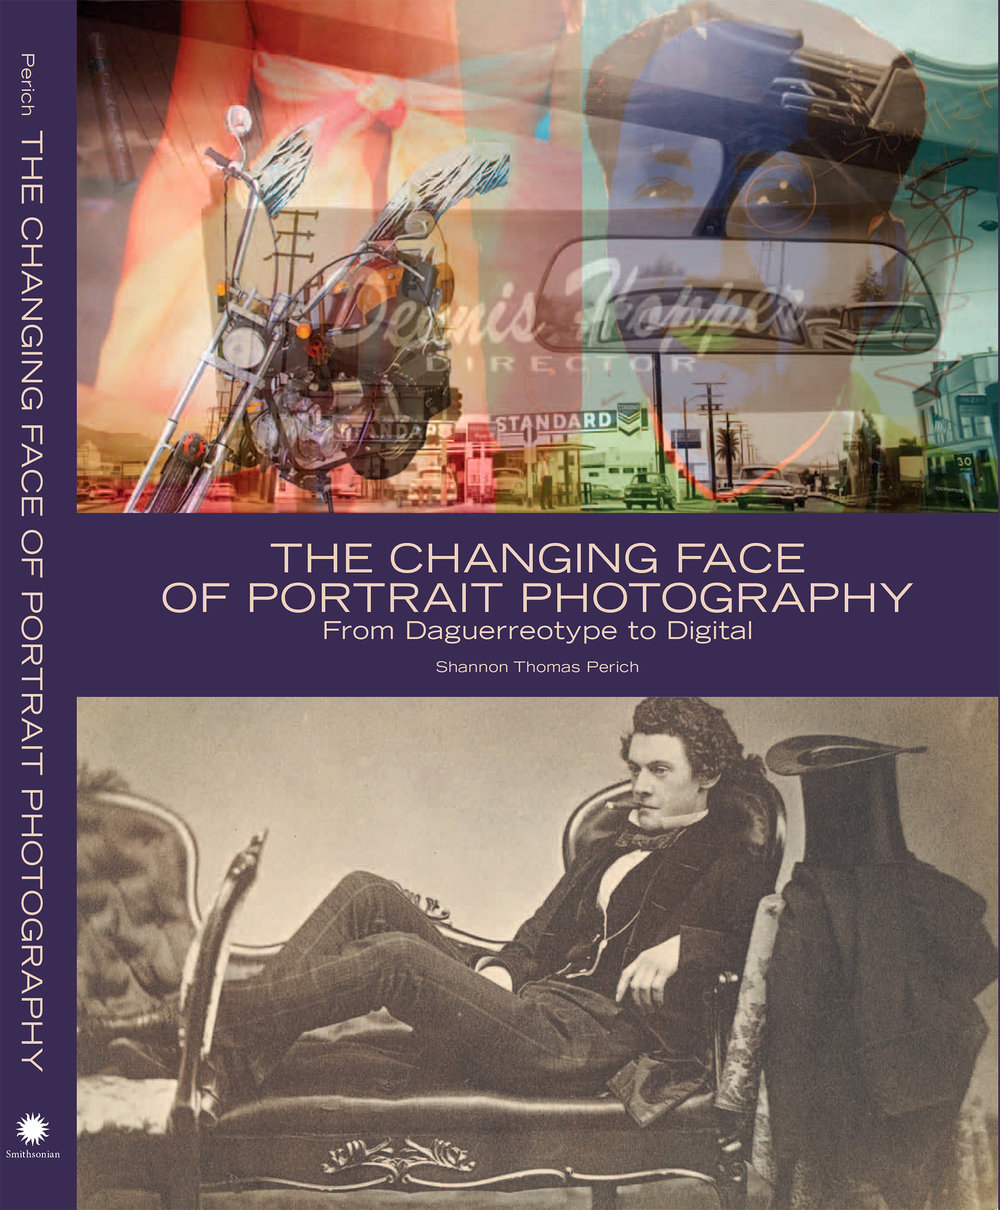 The Changing Face of Portrait Photography From Daguerreotype to Digital by Shannon Thomas Perich - Hardcover: 160 pagesPublisher: National Museum of American History in association with the Smithsonian Institution Scholarly PressLanguage: EnglishForeword: By Brent D. GlassISBN-10: 1588342743ISBN-13: 978-1588342744Product Dimensions: 11 x 8.9 x 1 inches